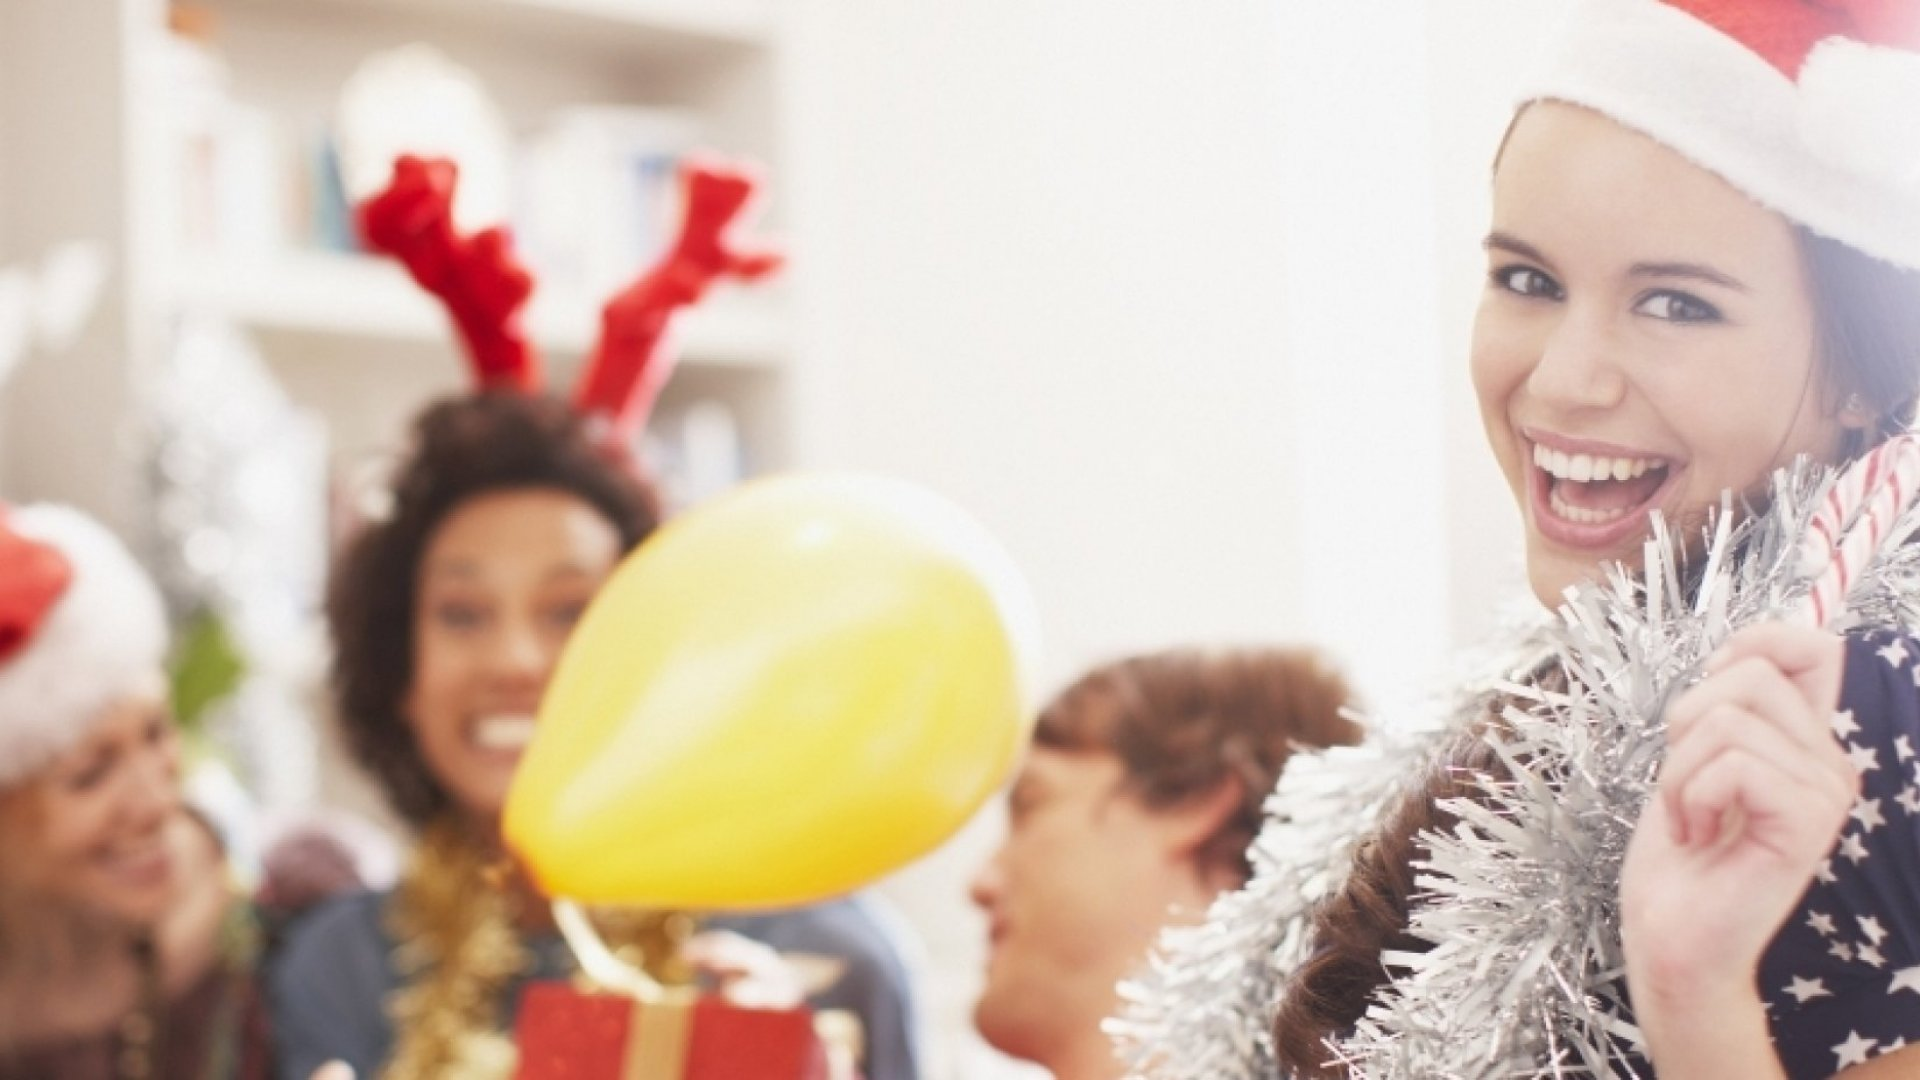 7 Ways Super Productive People Use the Holiday Season to Get Ahead (Despite All the Partying)